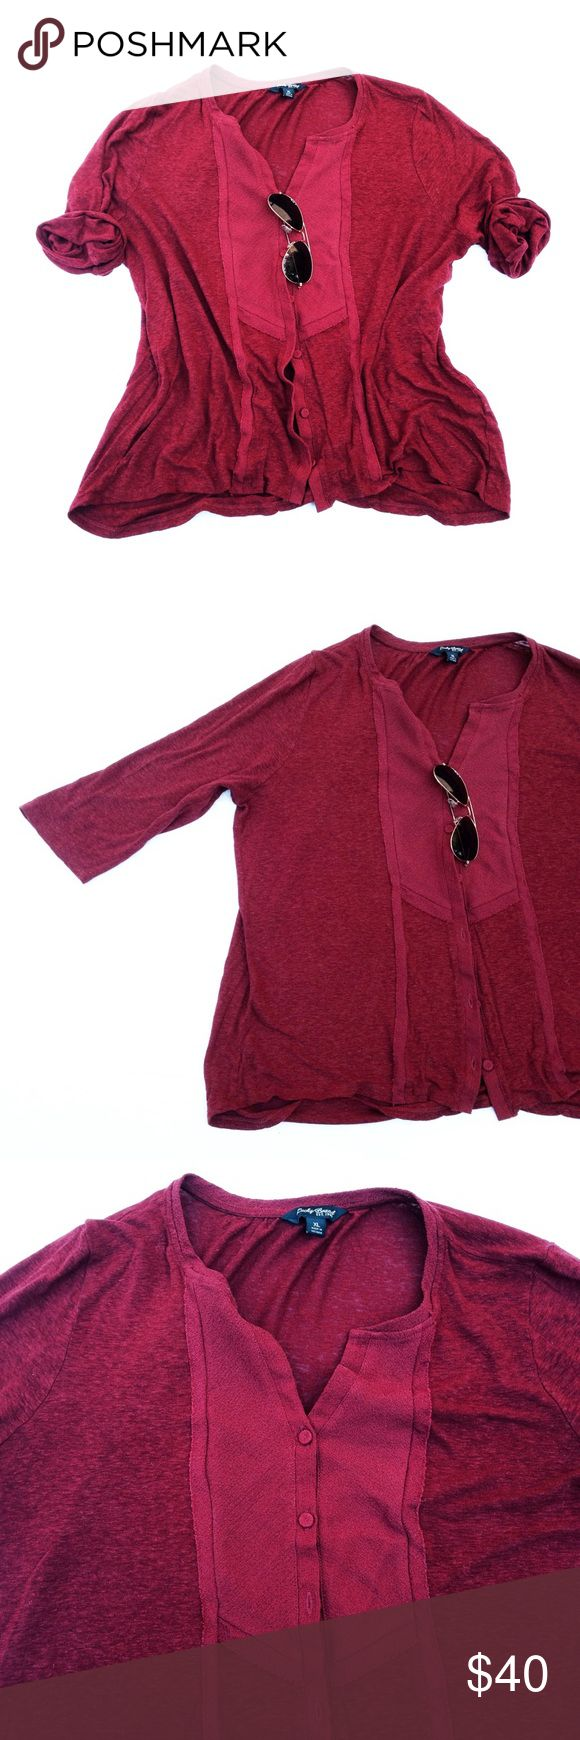 LUCKY shirt So soft and breezy. Perfect dark red. Buttons all the way upfront. Pit to pit appx 22, length appx 25, sleeve appx 17.  Thank you for visiting my closet. Please let me know if you have any questions. :) Lucky Brand Tops